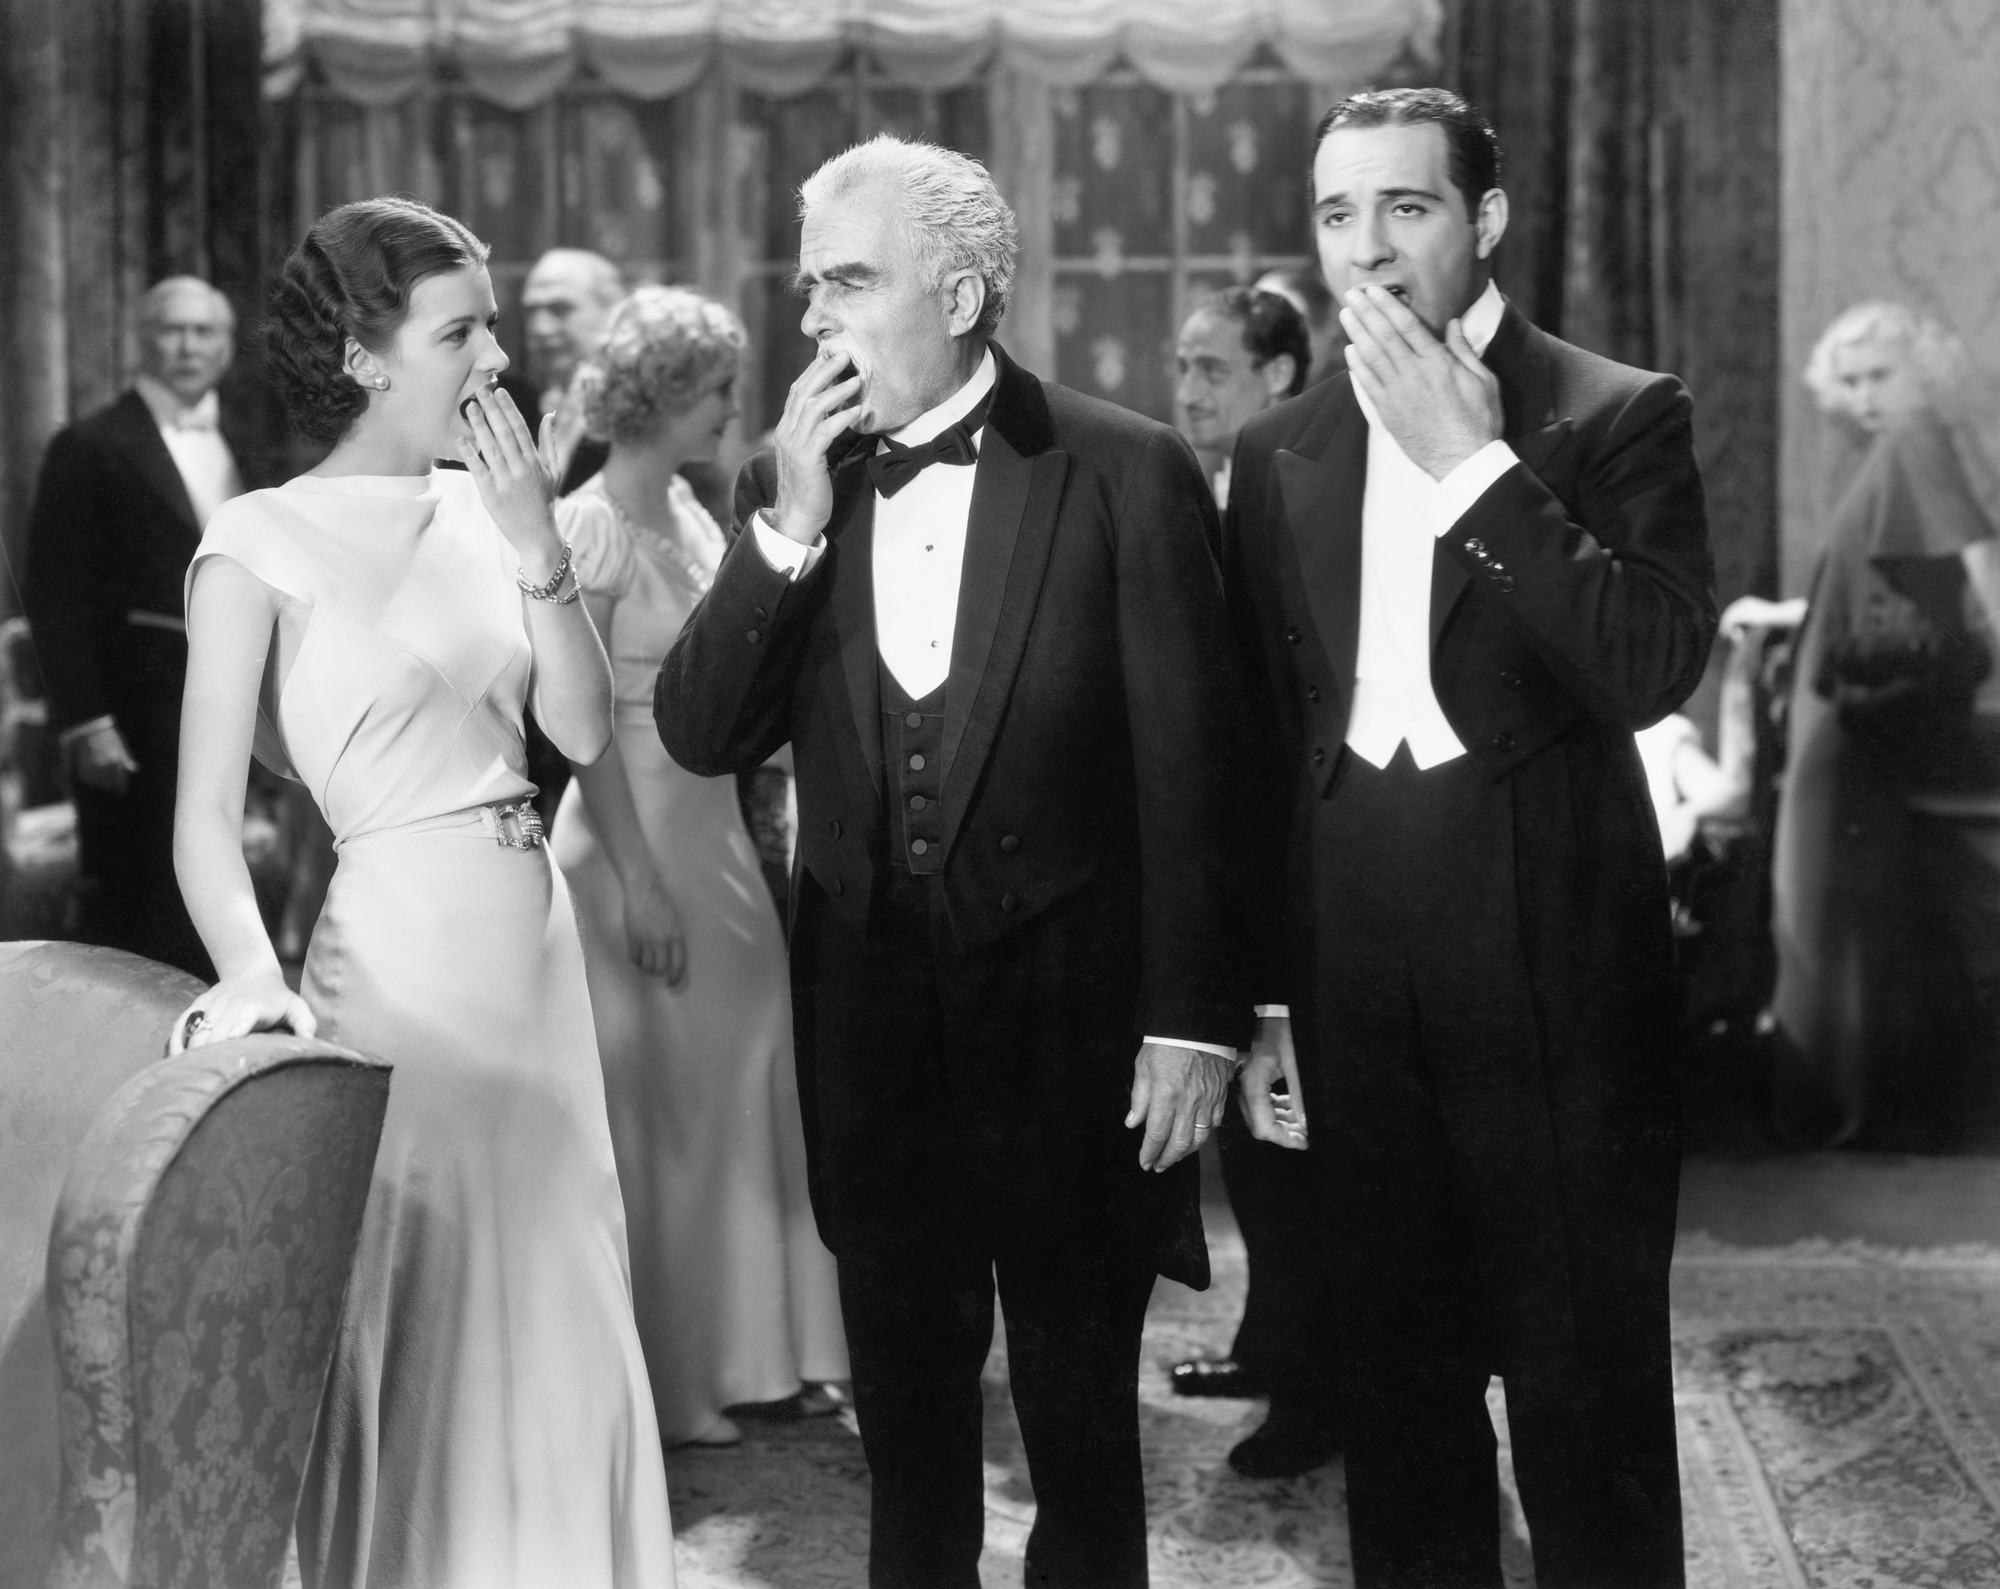 Three people standing together at a formal party yawning and being bored